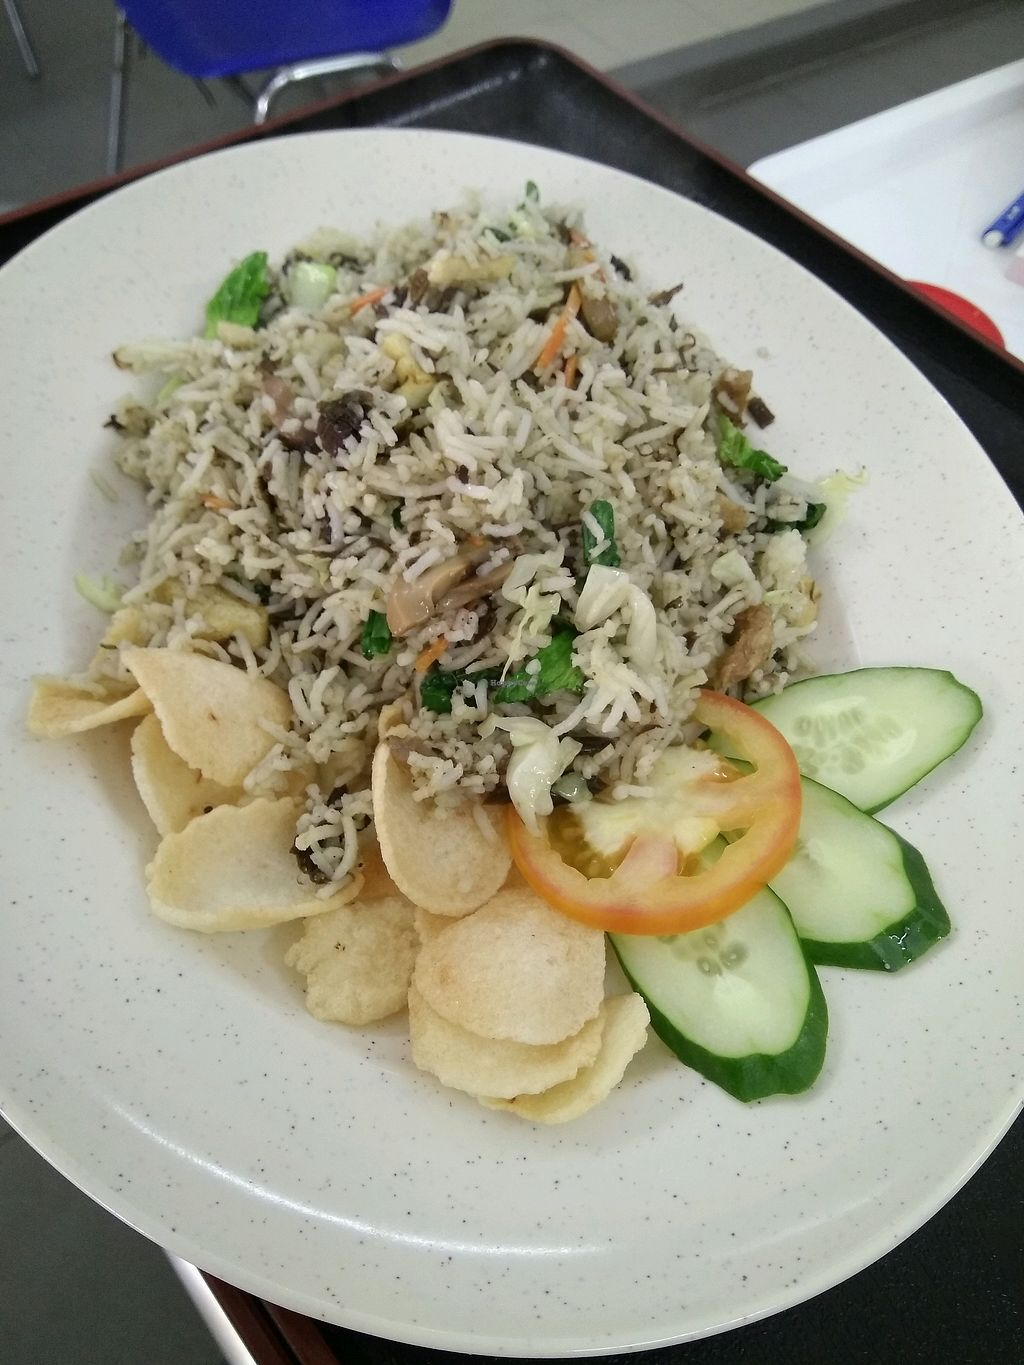 """Photo of Two Peas In A Pot  by <a href=""""/members/profile/AdelOng"""">AdelOng</a> <br/>Fried Rice @$4.50 <br/> April 19, 2018  - <a href='/contact/abuse/image/116593/387984'>Report</a>"""